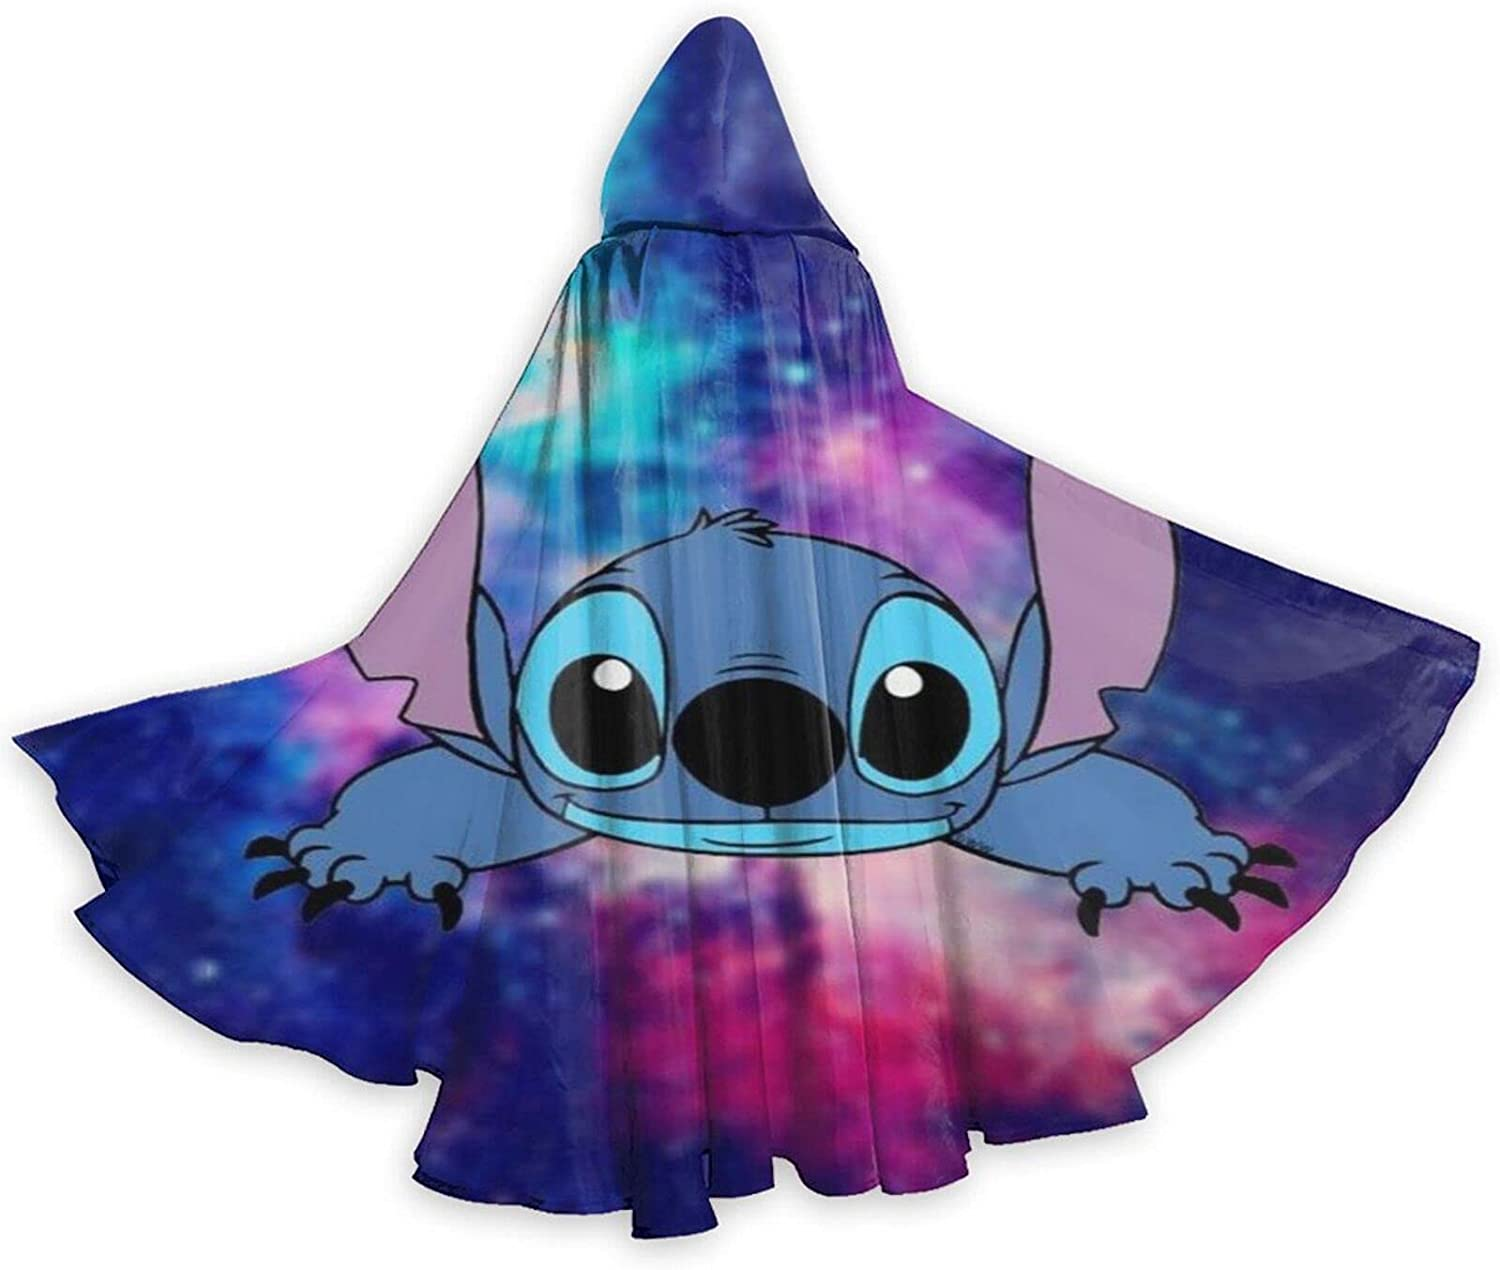 Unisex S-titch Hooded New Orleans Mall Halloween Wizard In stock Costum Cloak Robe Cosplay